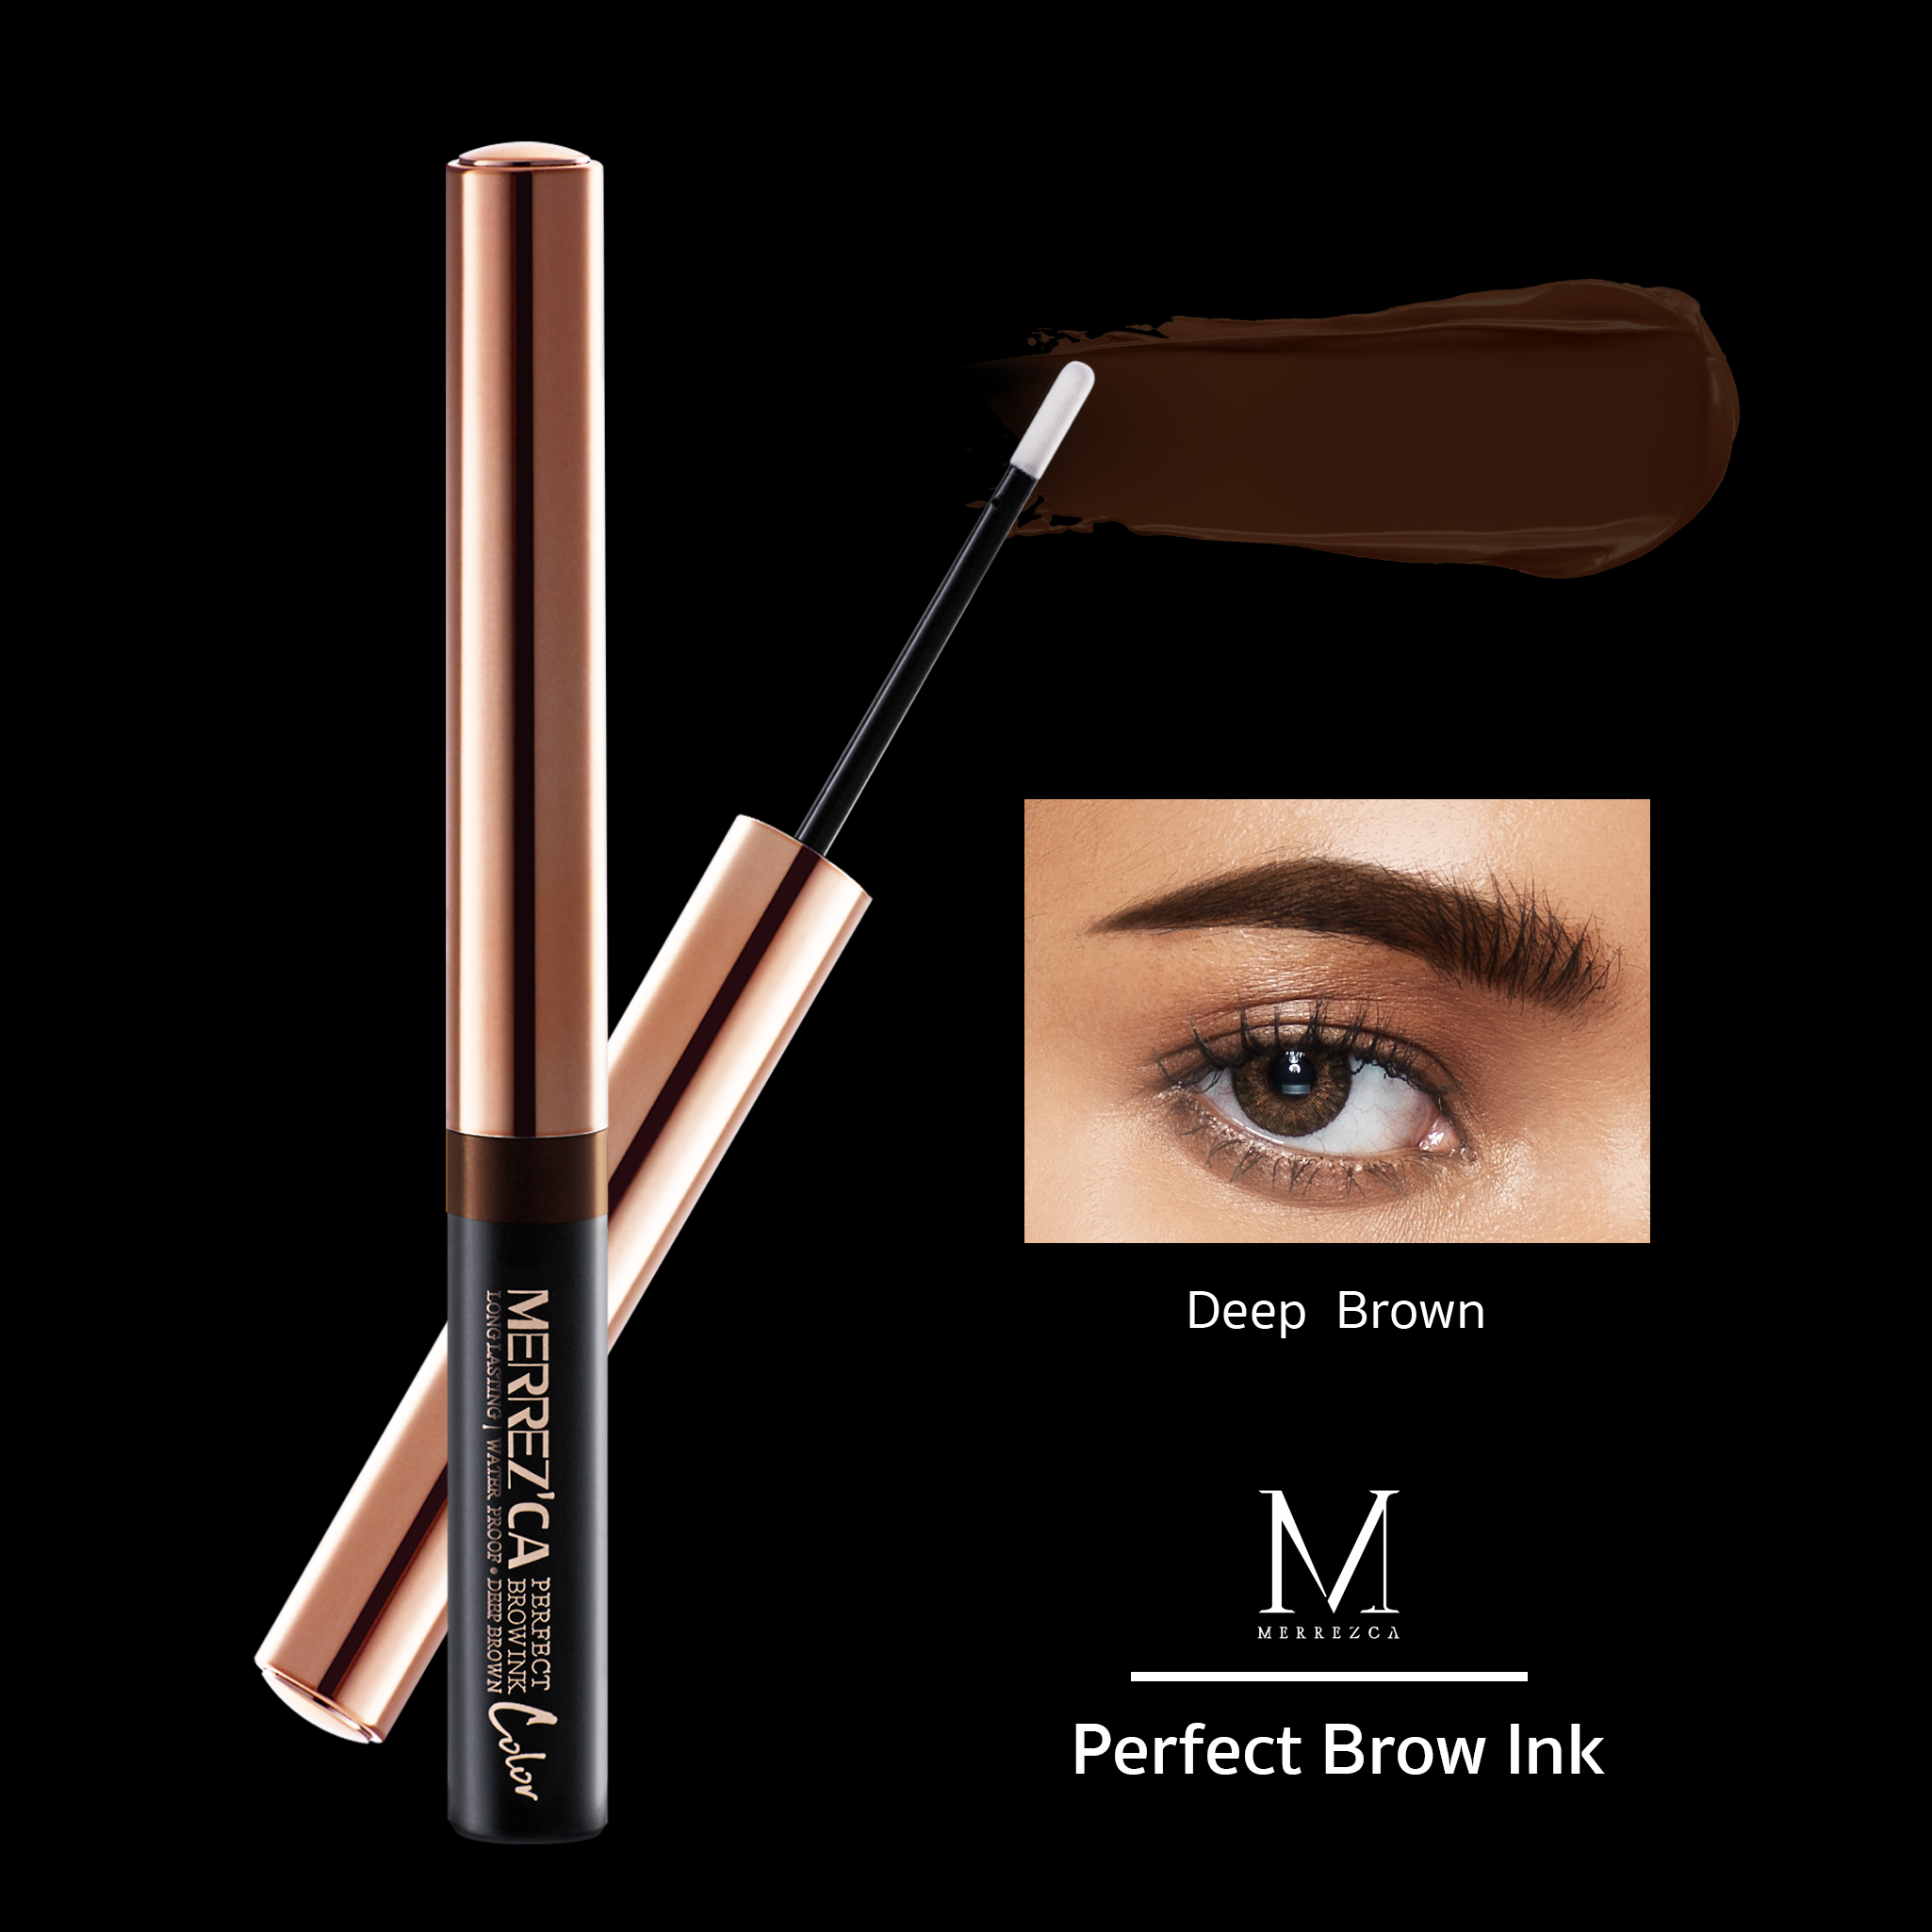 Merrez'ca Perfect Brow Ink #Deep Brown